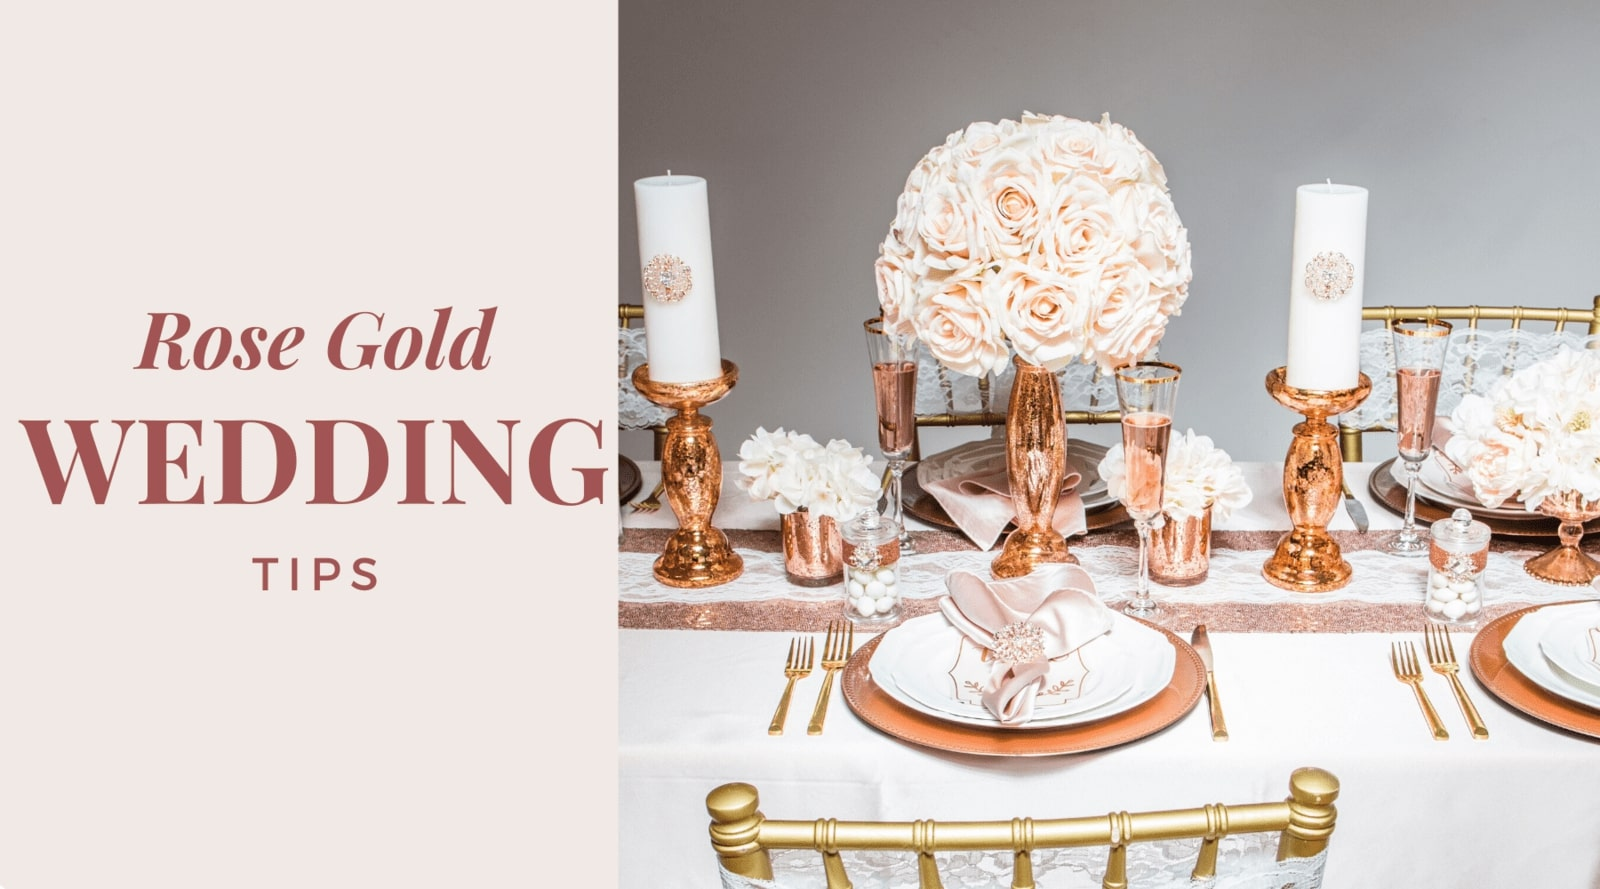 Rose Gold Wedding Decor Tips